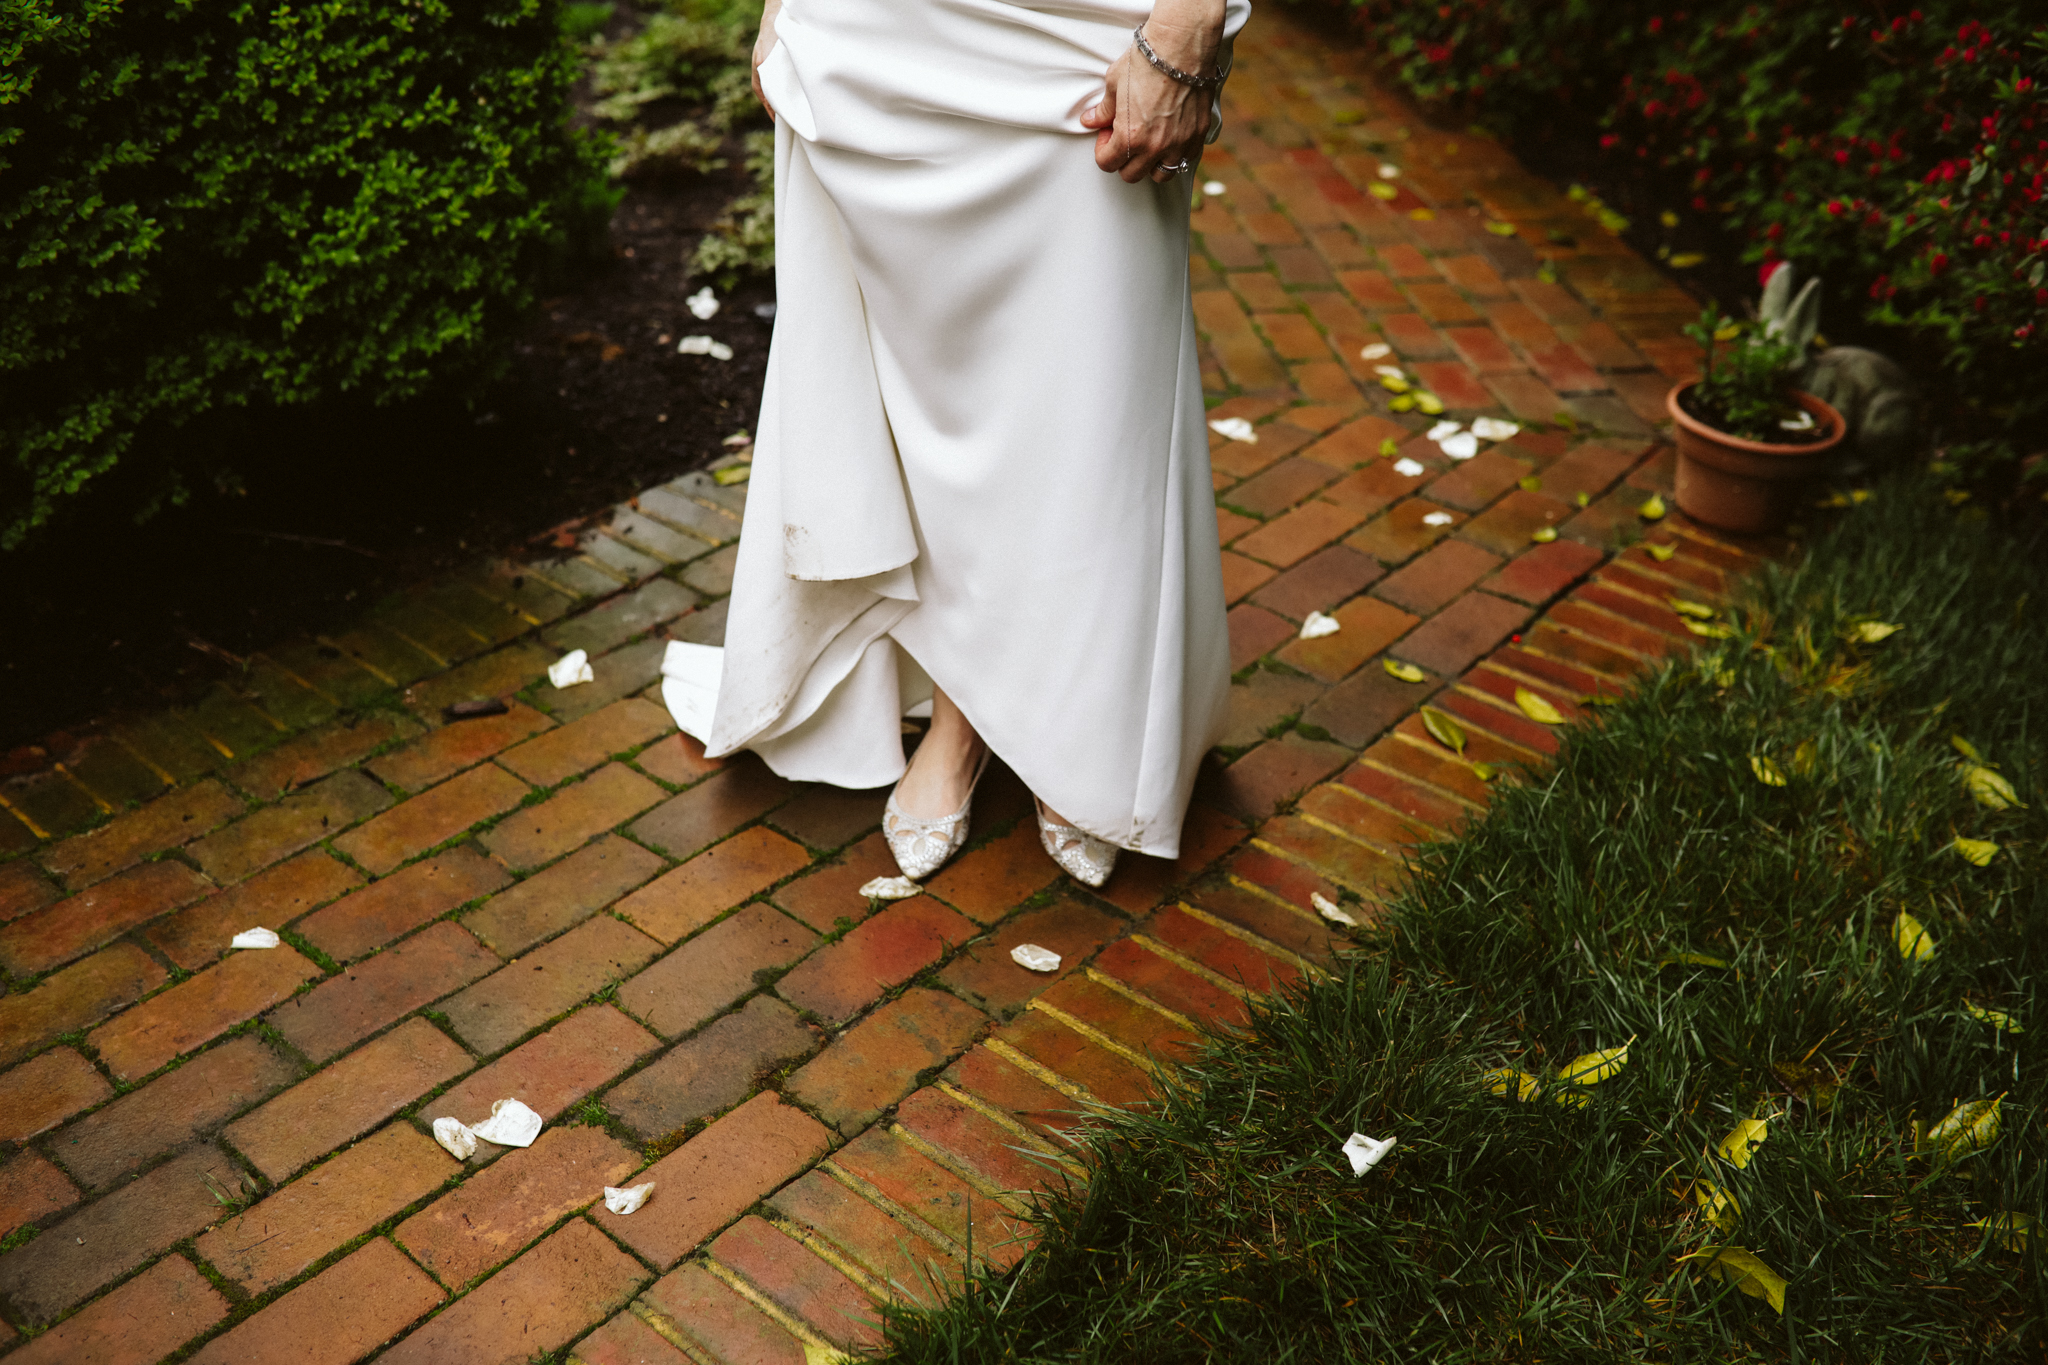 cook_wedding_richmond_virginia_rebecca_burt_photography-70.jpg